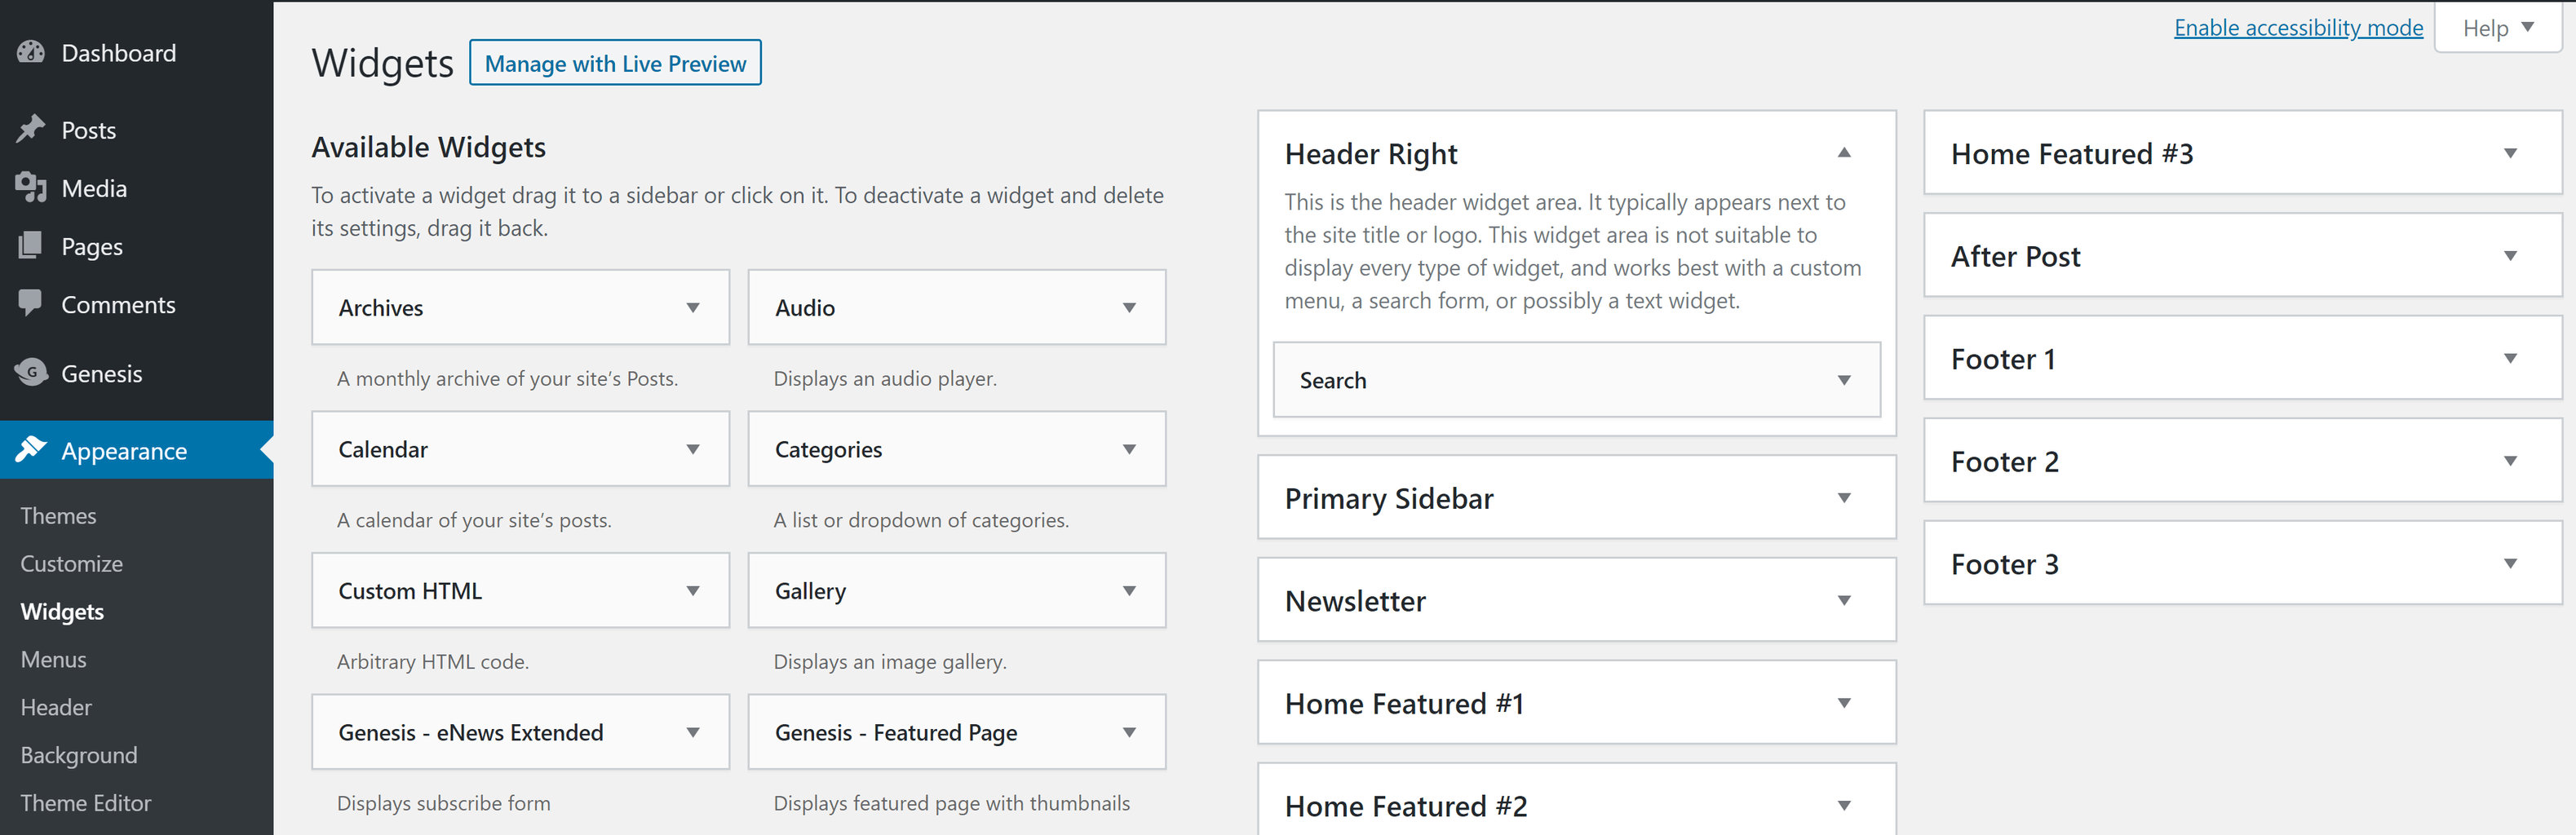 Add any necessary widgets to your site to replicate your live site.